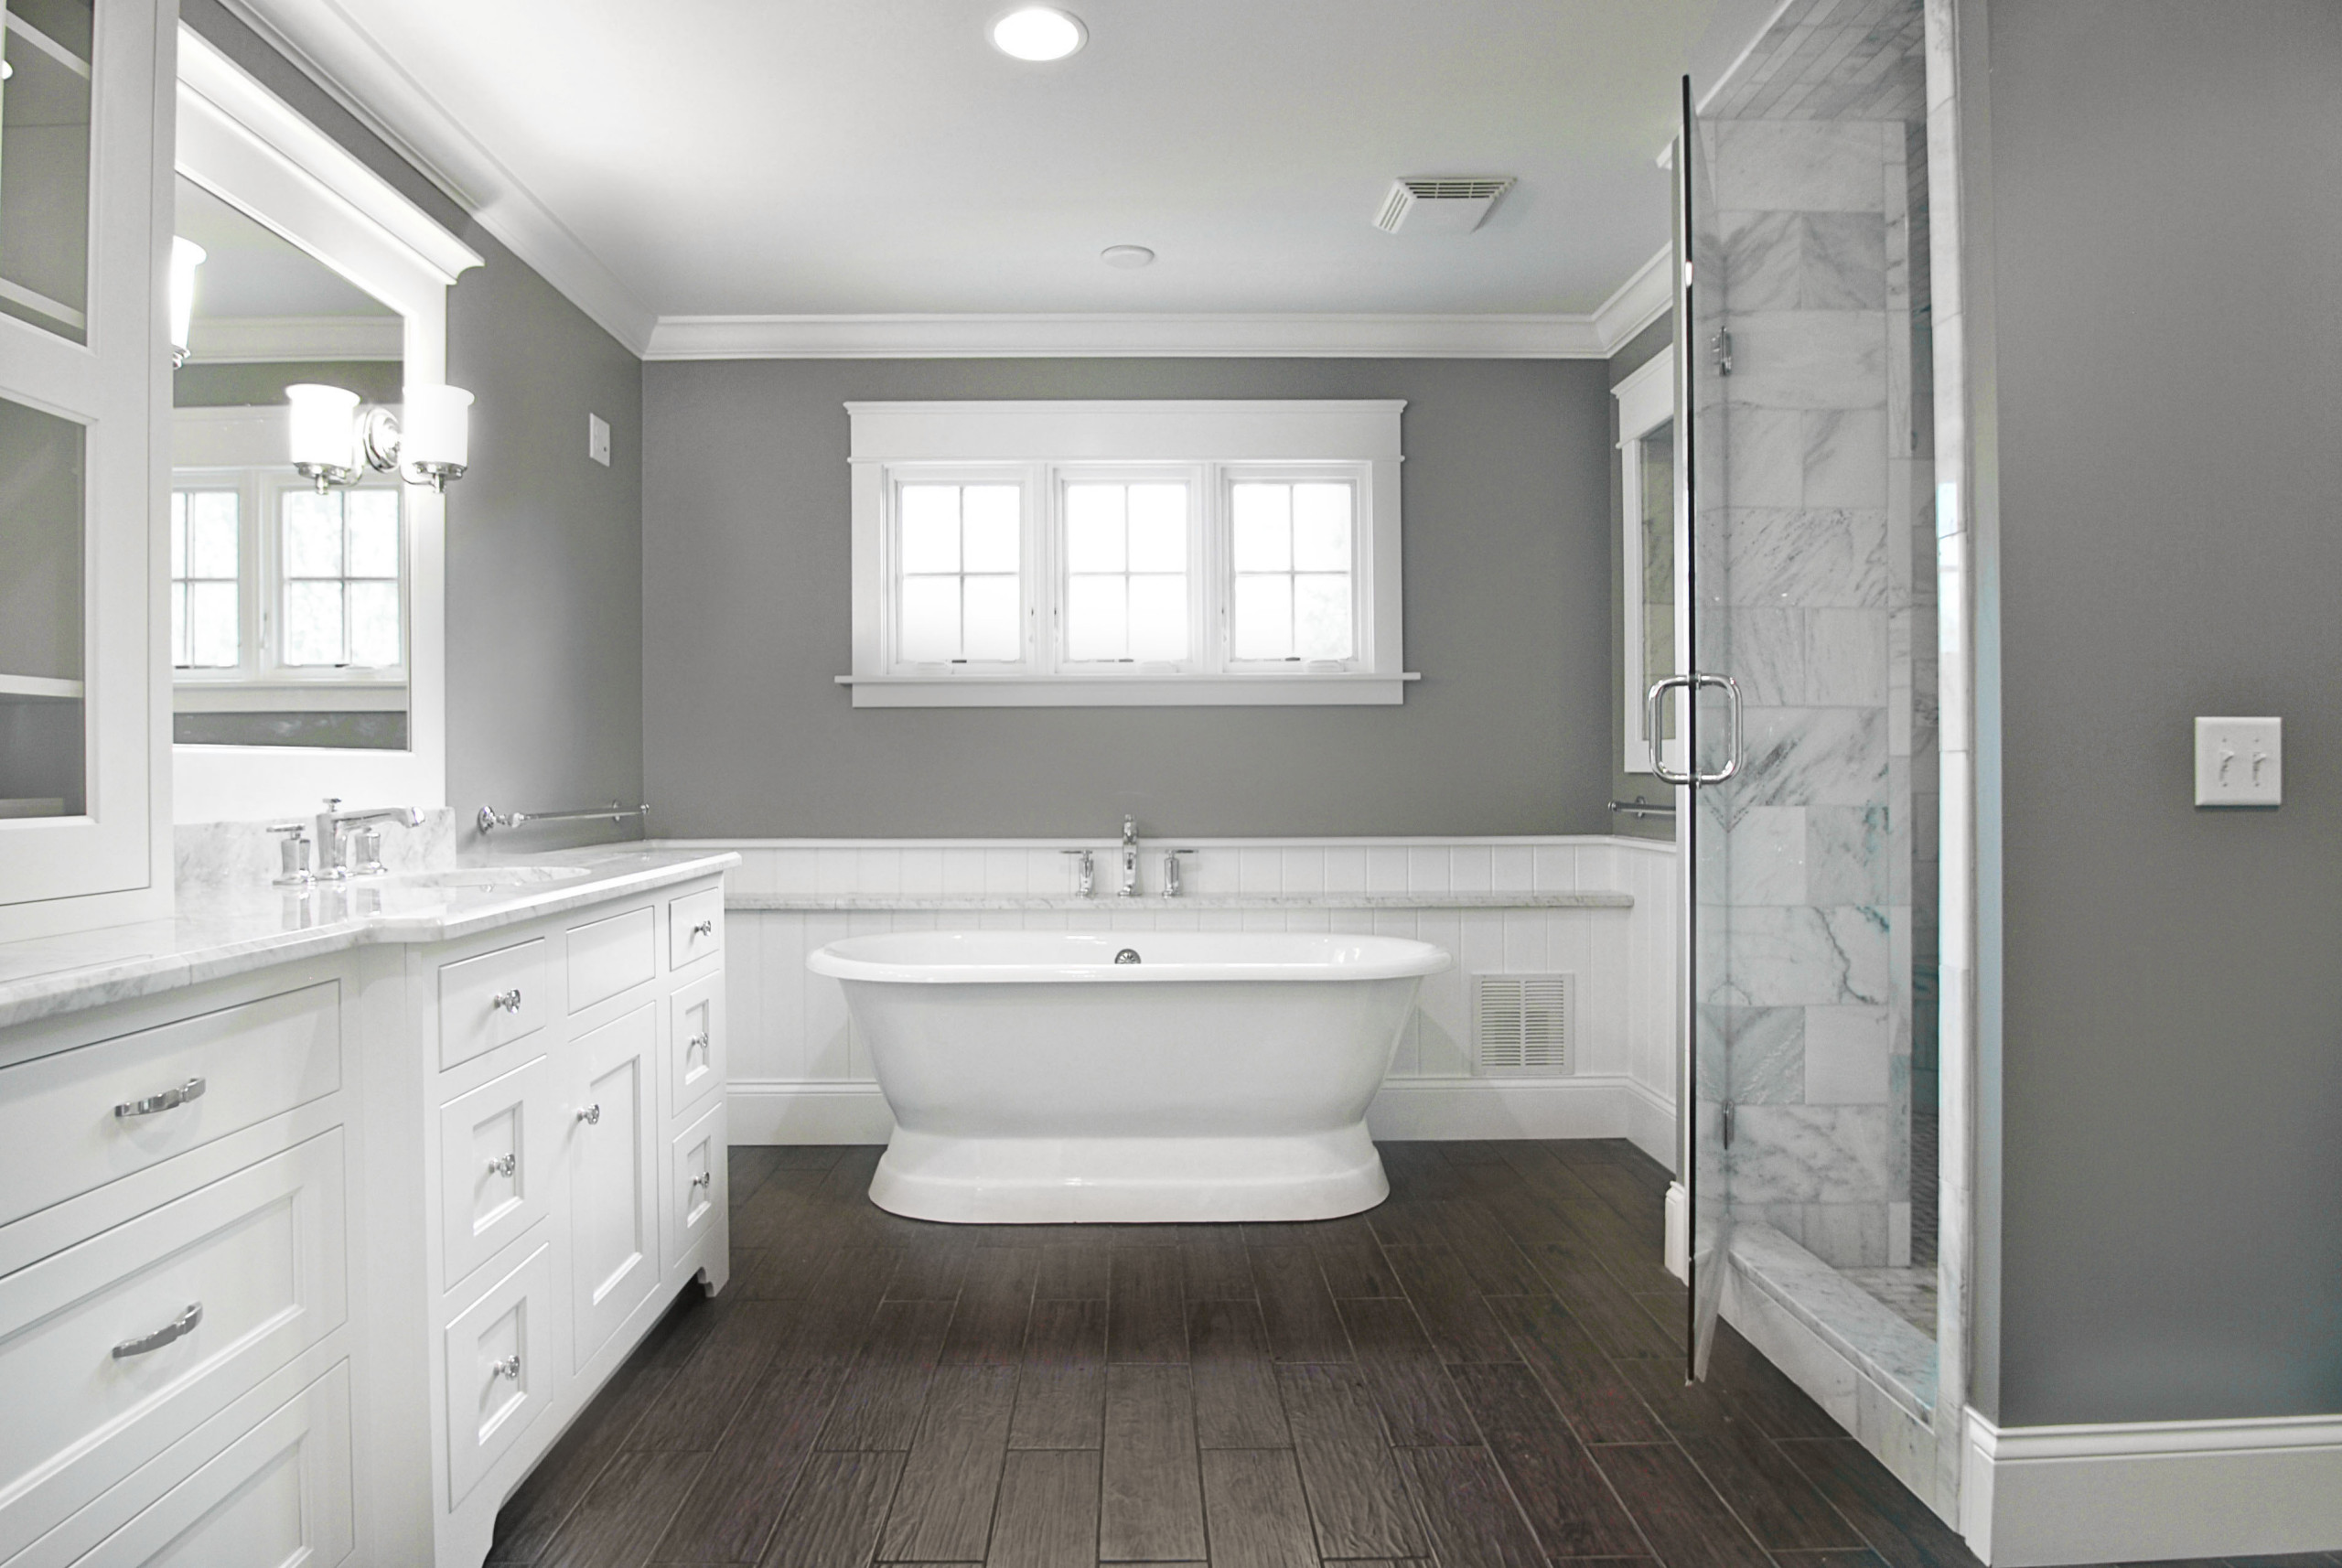 75 Beautiful Traditional Dark Wood Floor Bathroom Pictures Ideas November 2020 Houzz